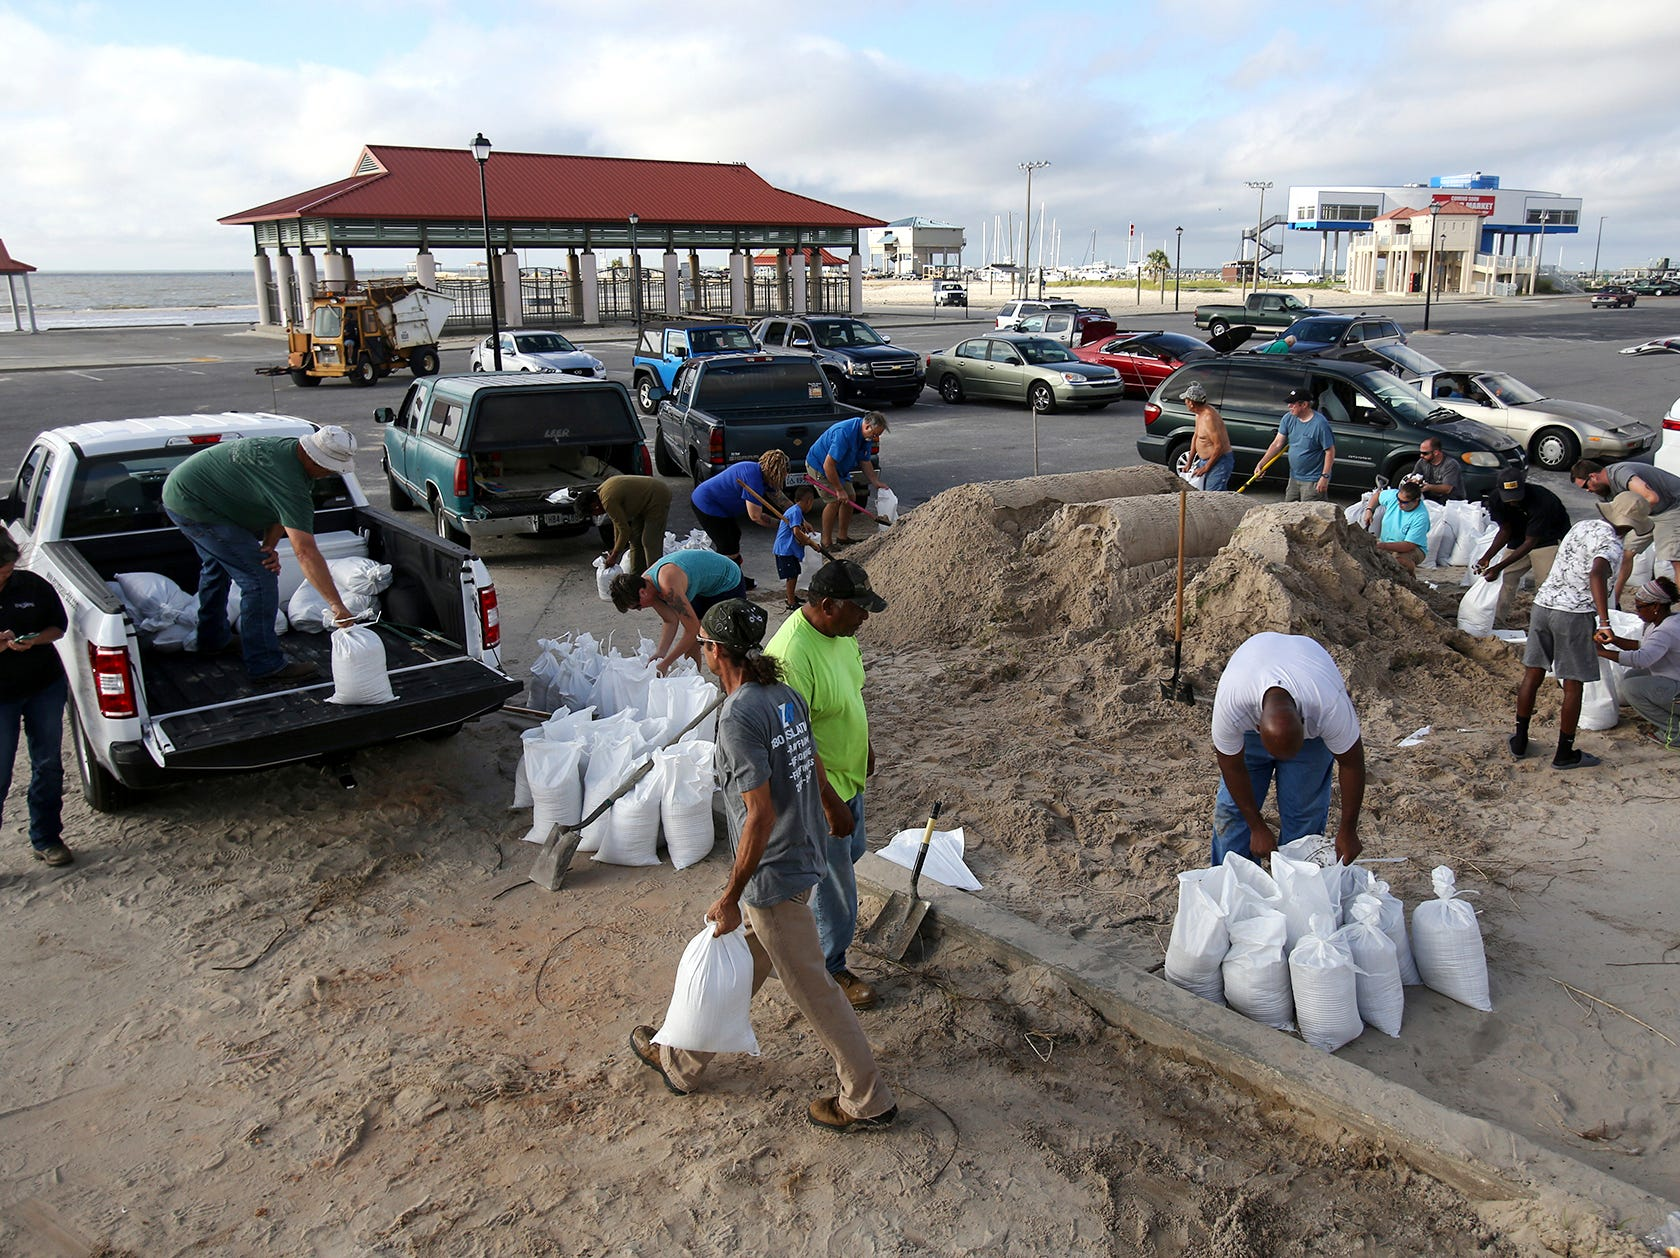 People fill sandbags at Long Beach Harbor, Tuesday, Sept. 4, 2018, in Long Beach, Miss., in advance of Tropical Storm Gordon, which is continuing to strengthen and is expected to become a hurricane late Tuesday when it hits the central U.S. Gulf Coast, including coastal Mississippi.